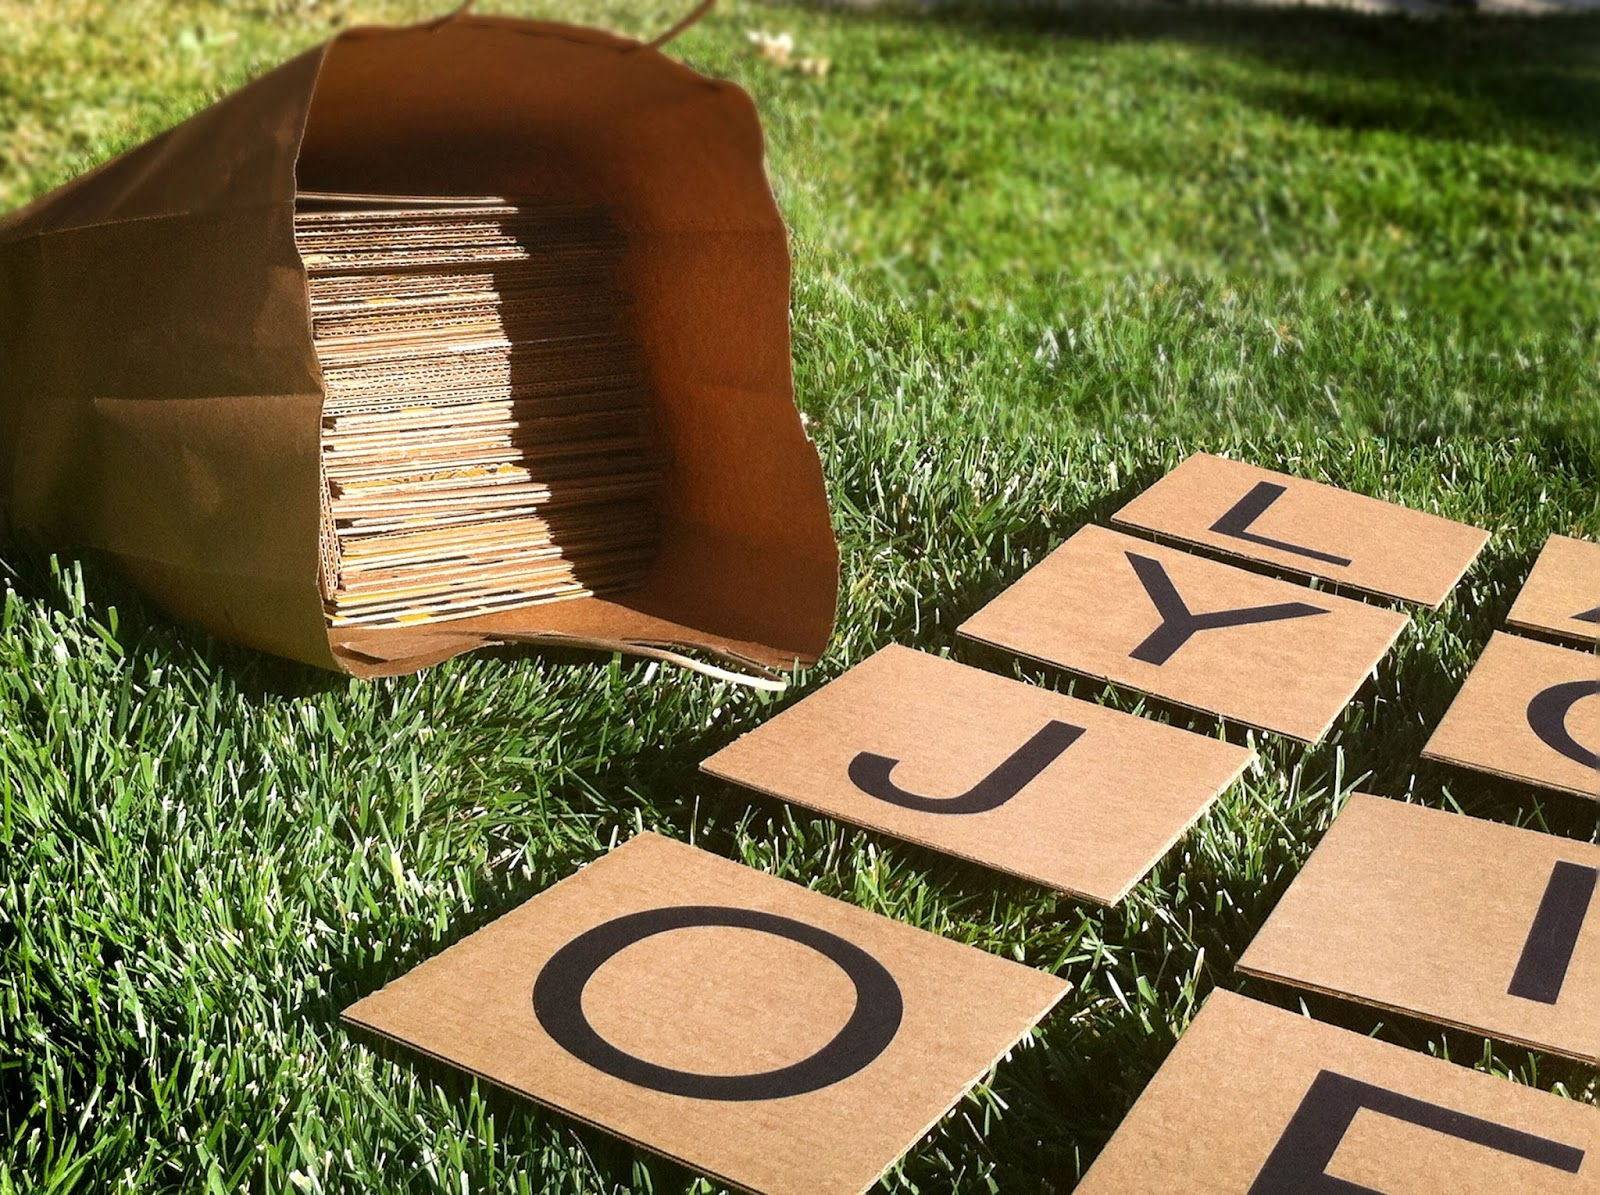 Backyard Scrabble Tiles : From the Carriage House Yard Scrabble & Boggle